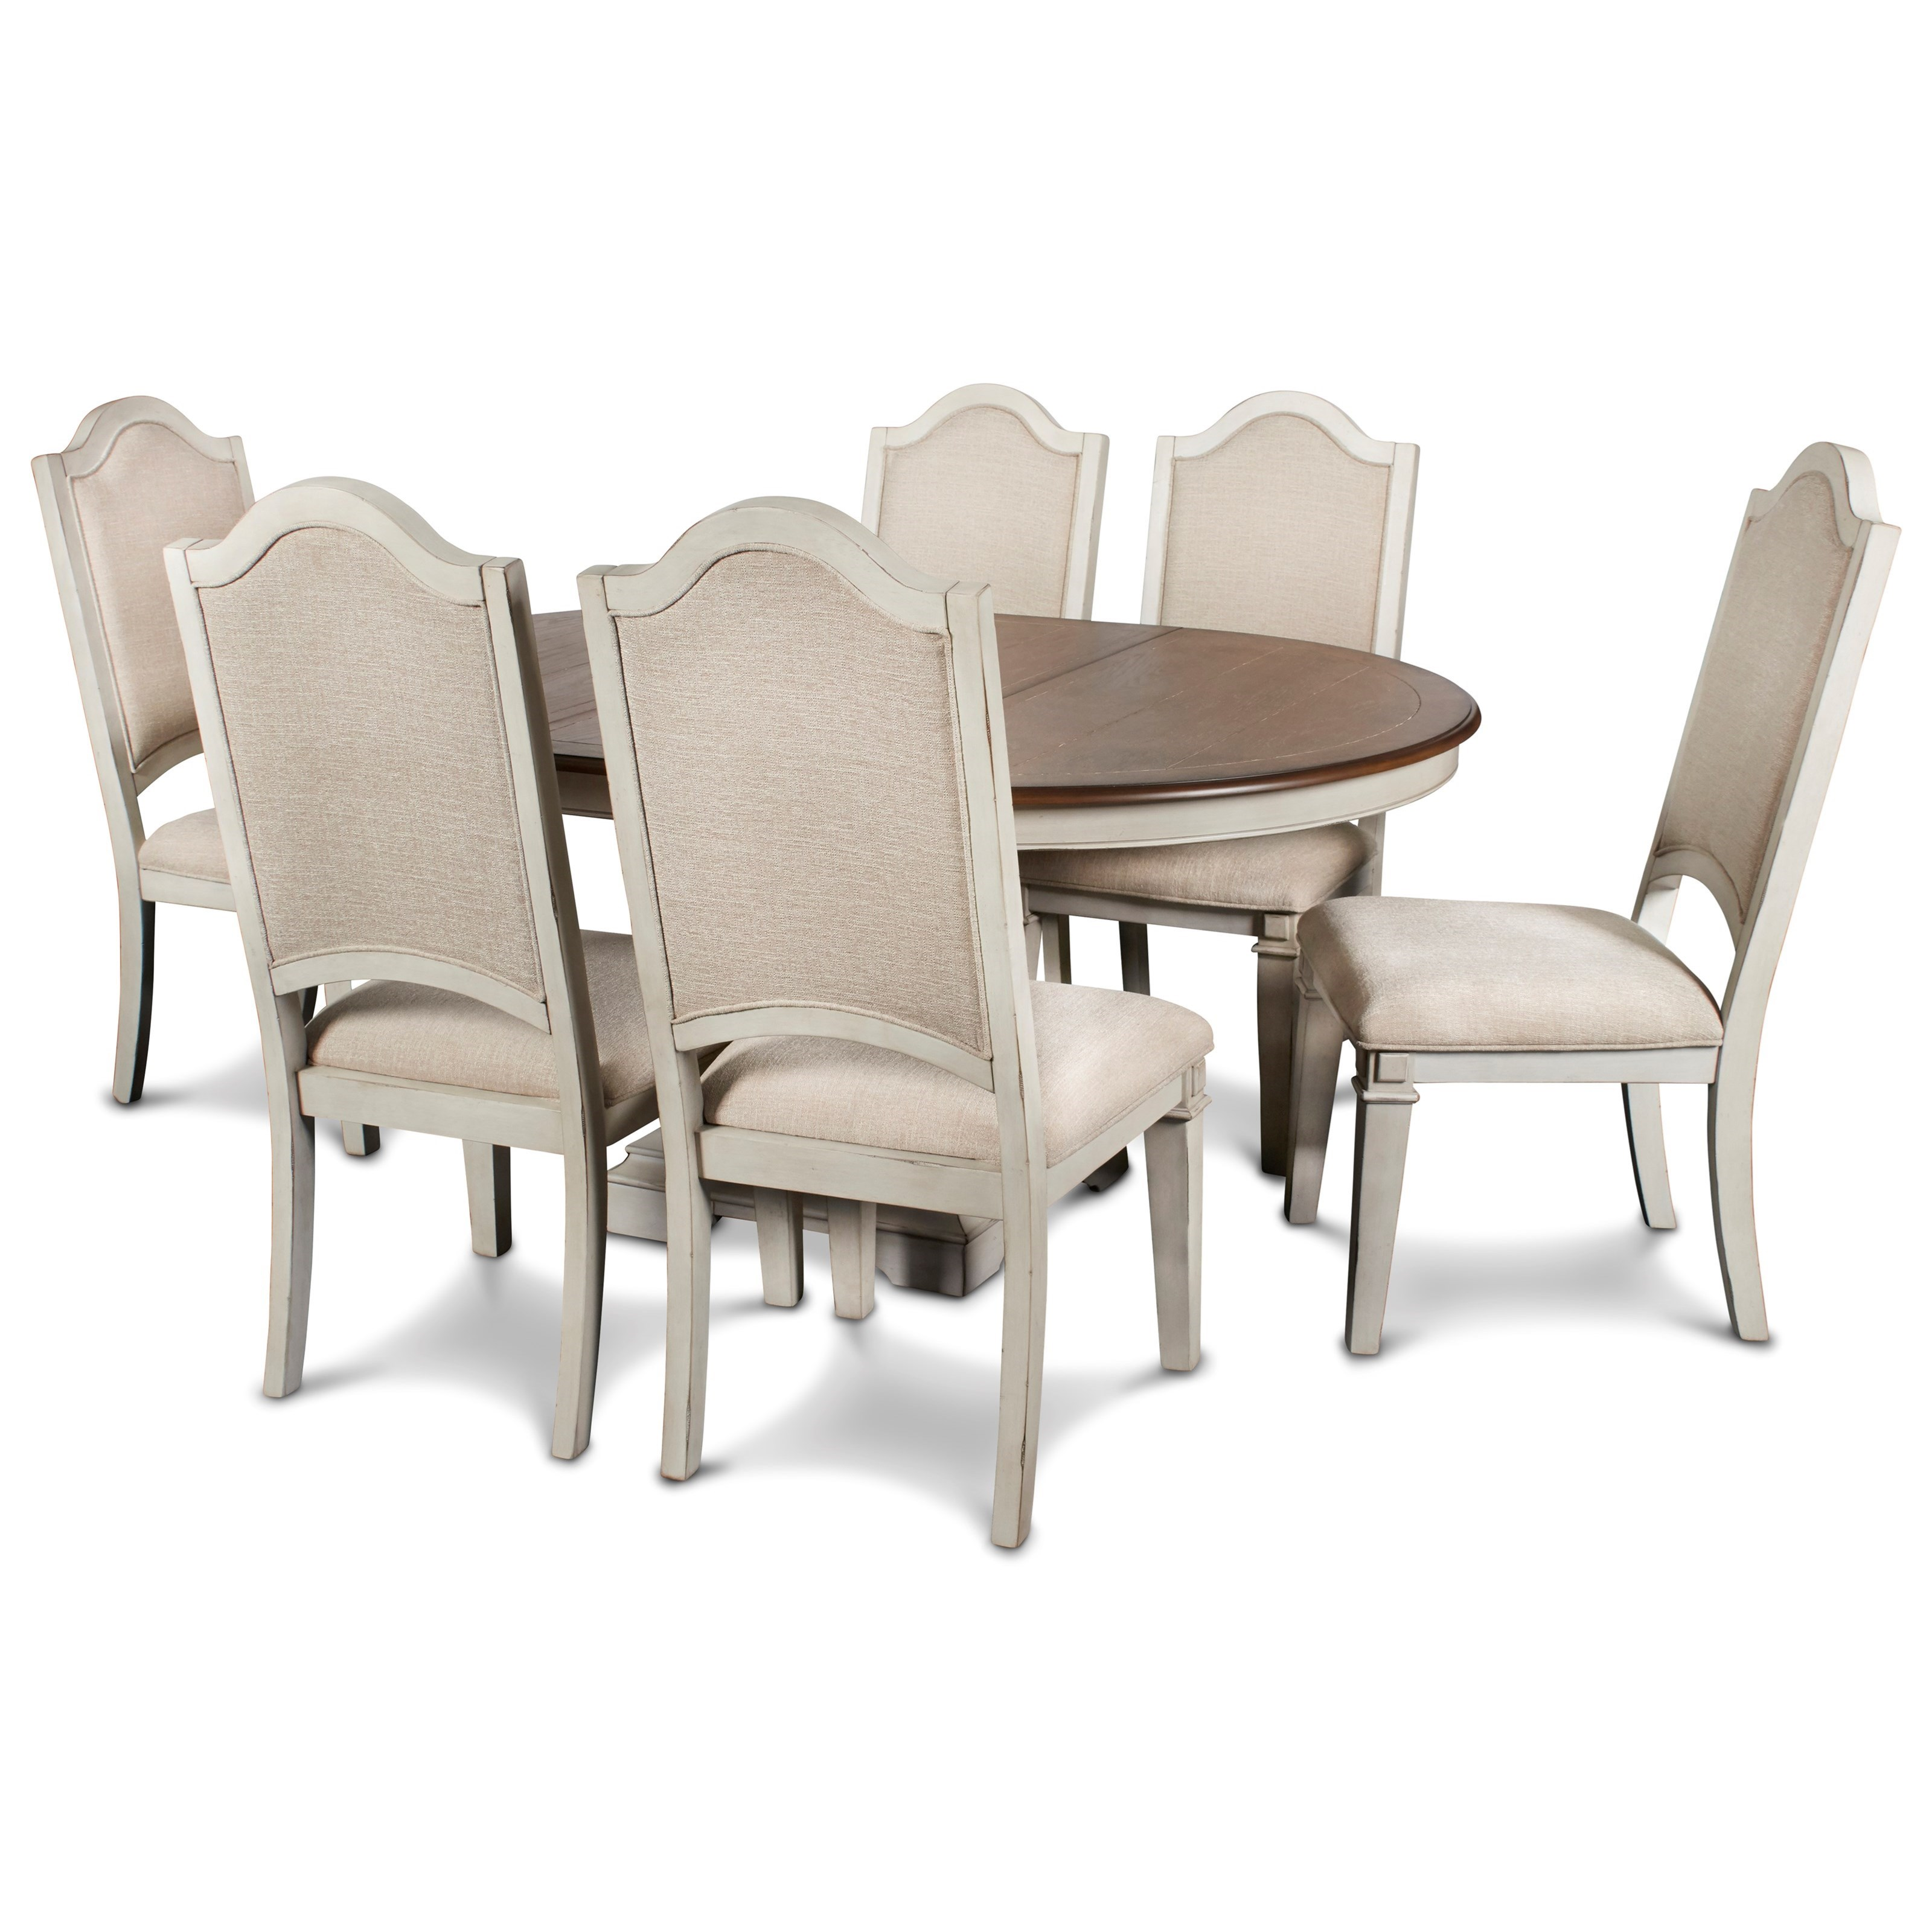 Anastasia 7-Piece Table and Chair Set by New Classic at Carolina Direct